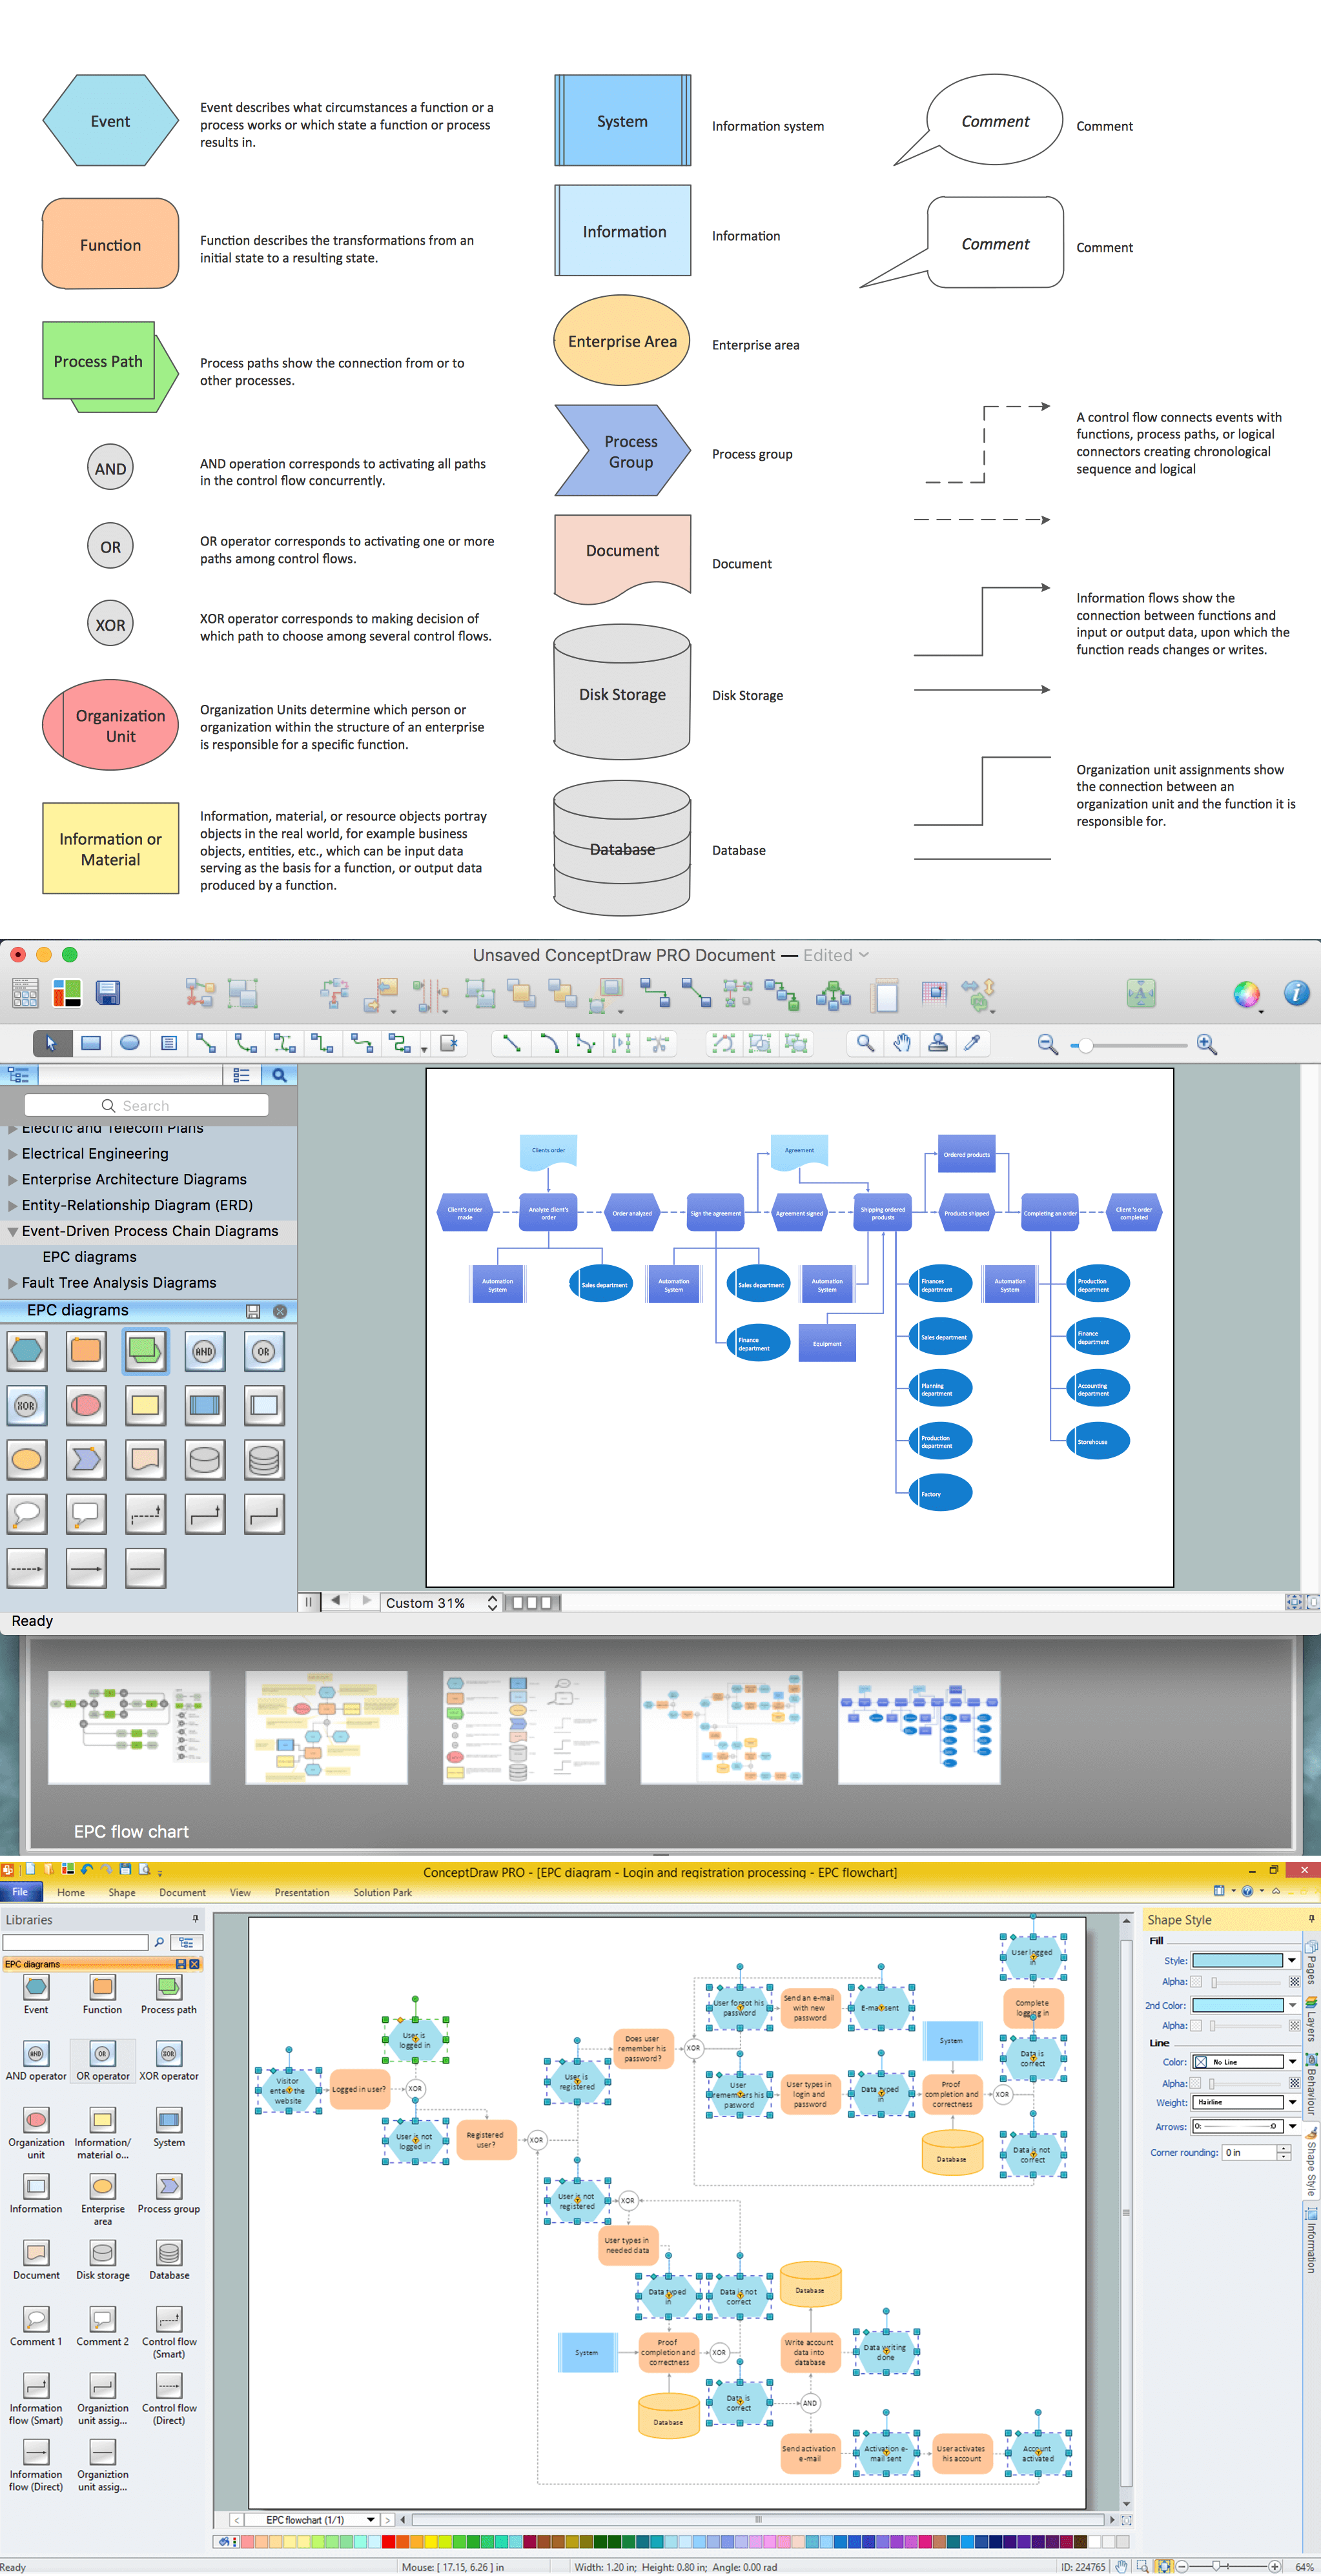 Diagramming Software for Business Process — Event Driven Process Chain (EPC)Diagram (Win, Mac)